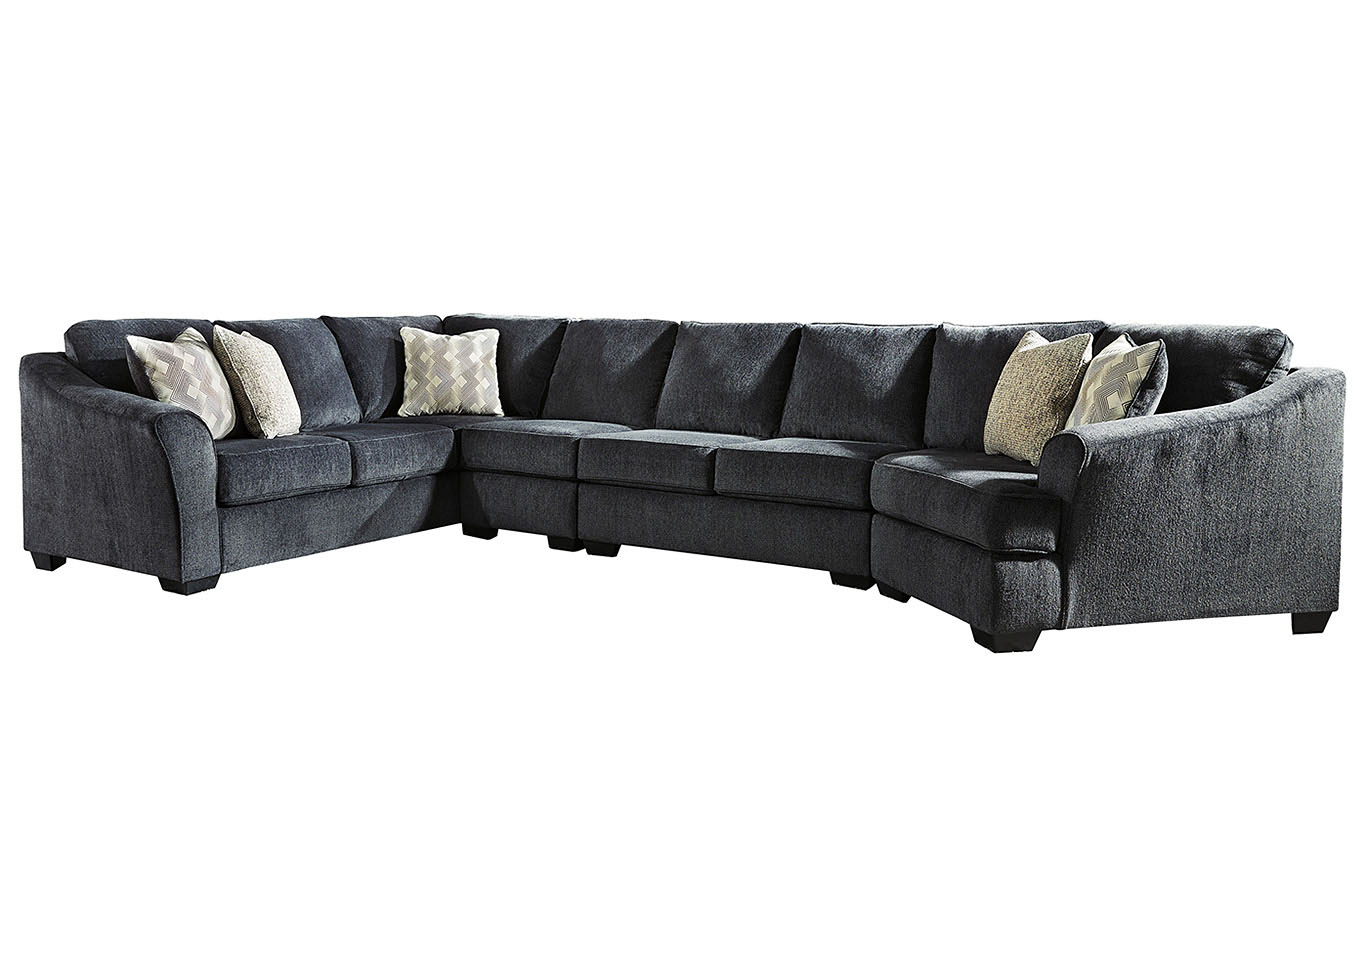 Eltmann Slate Left Arm Facing Long Sofa Sectional,Signature Design By Ashley